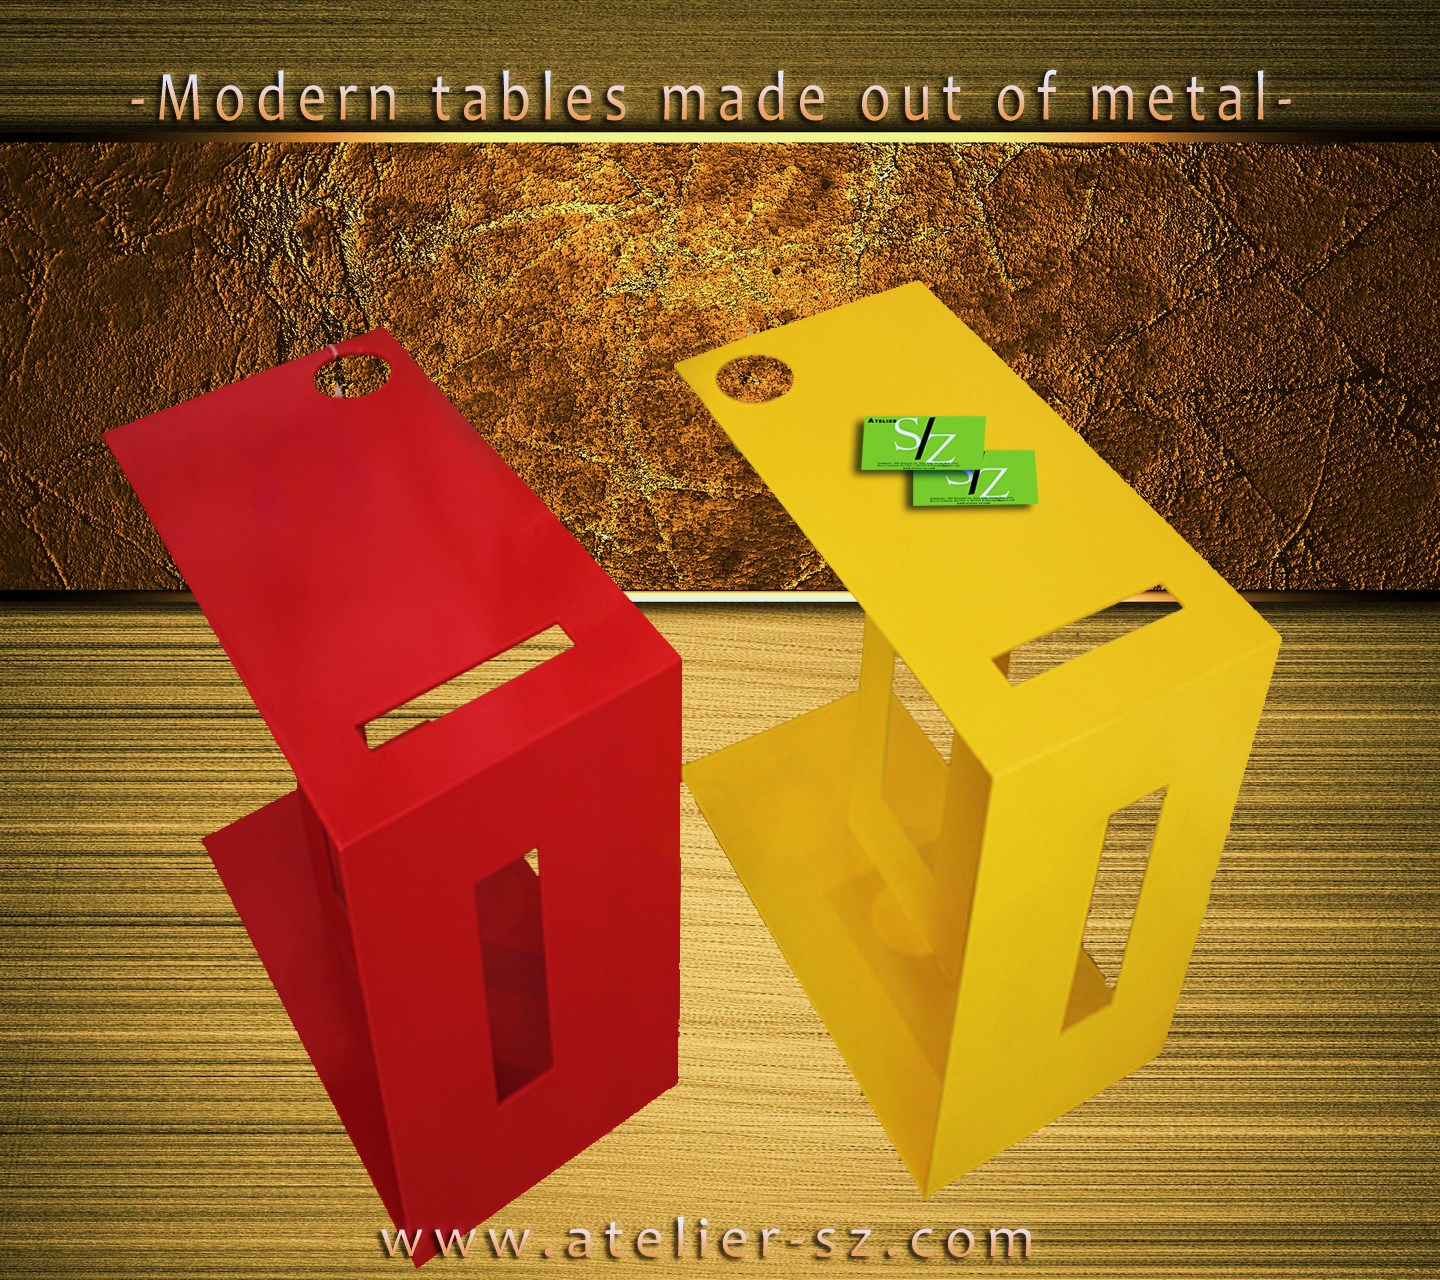 /media/1235/modern-tables-metal-pub2.jpg